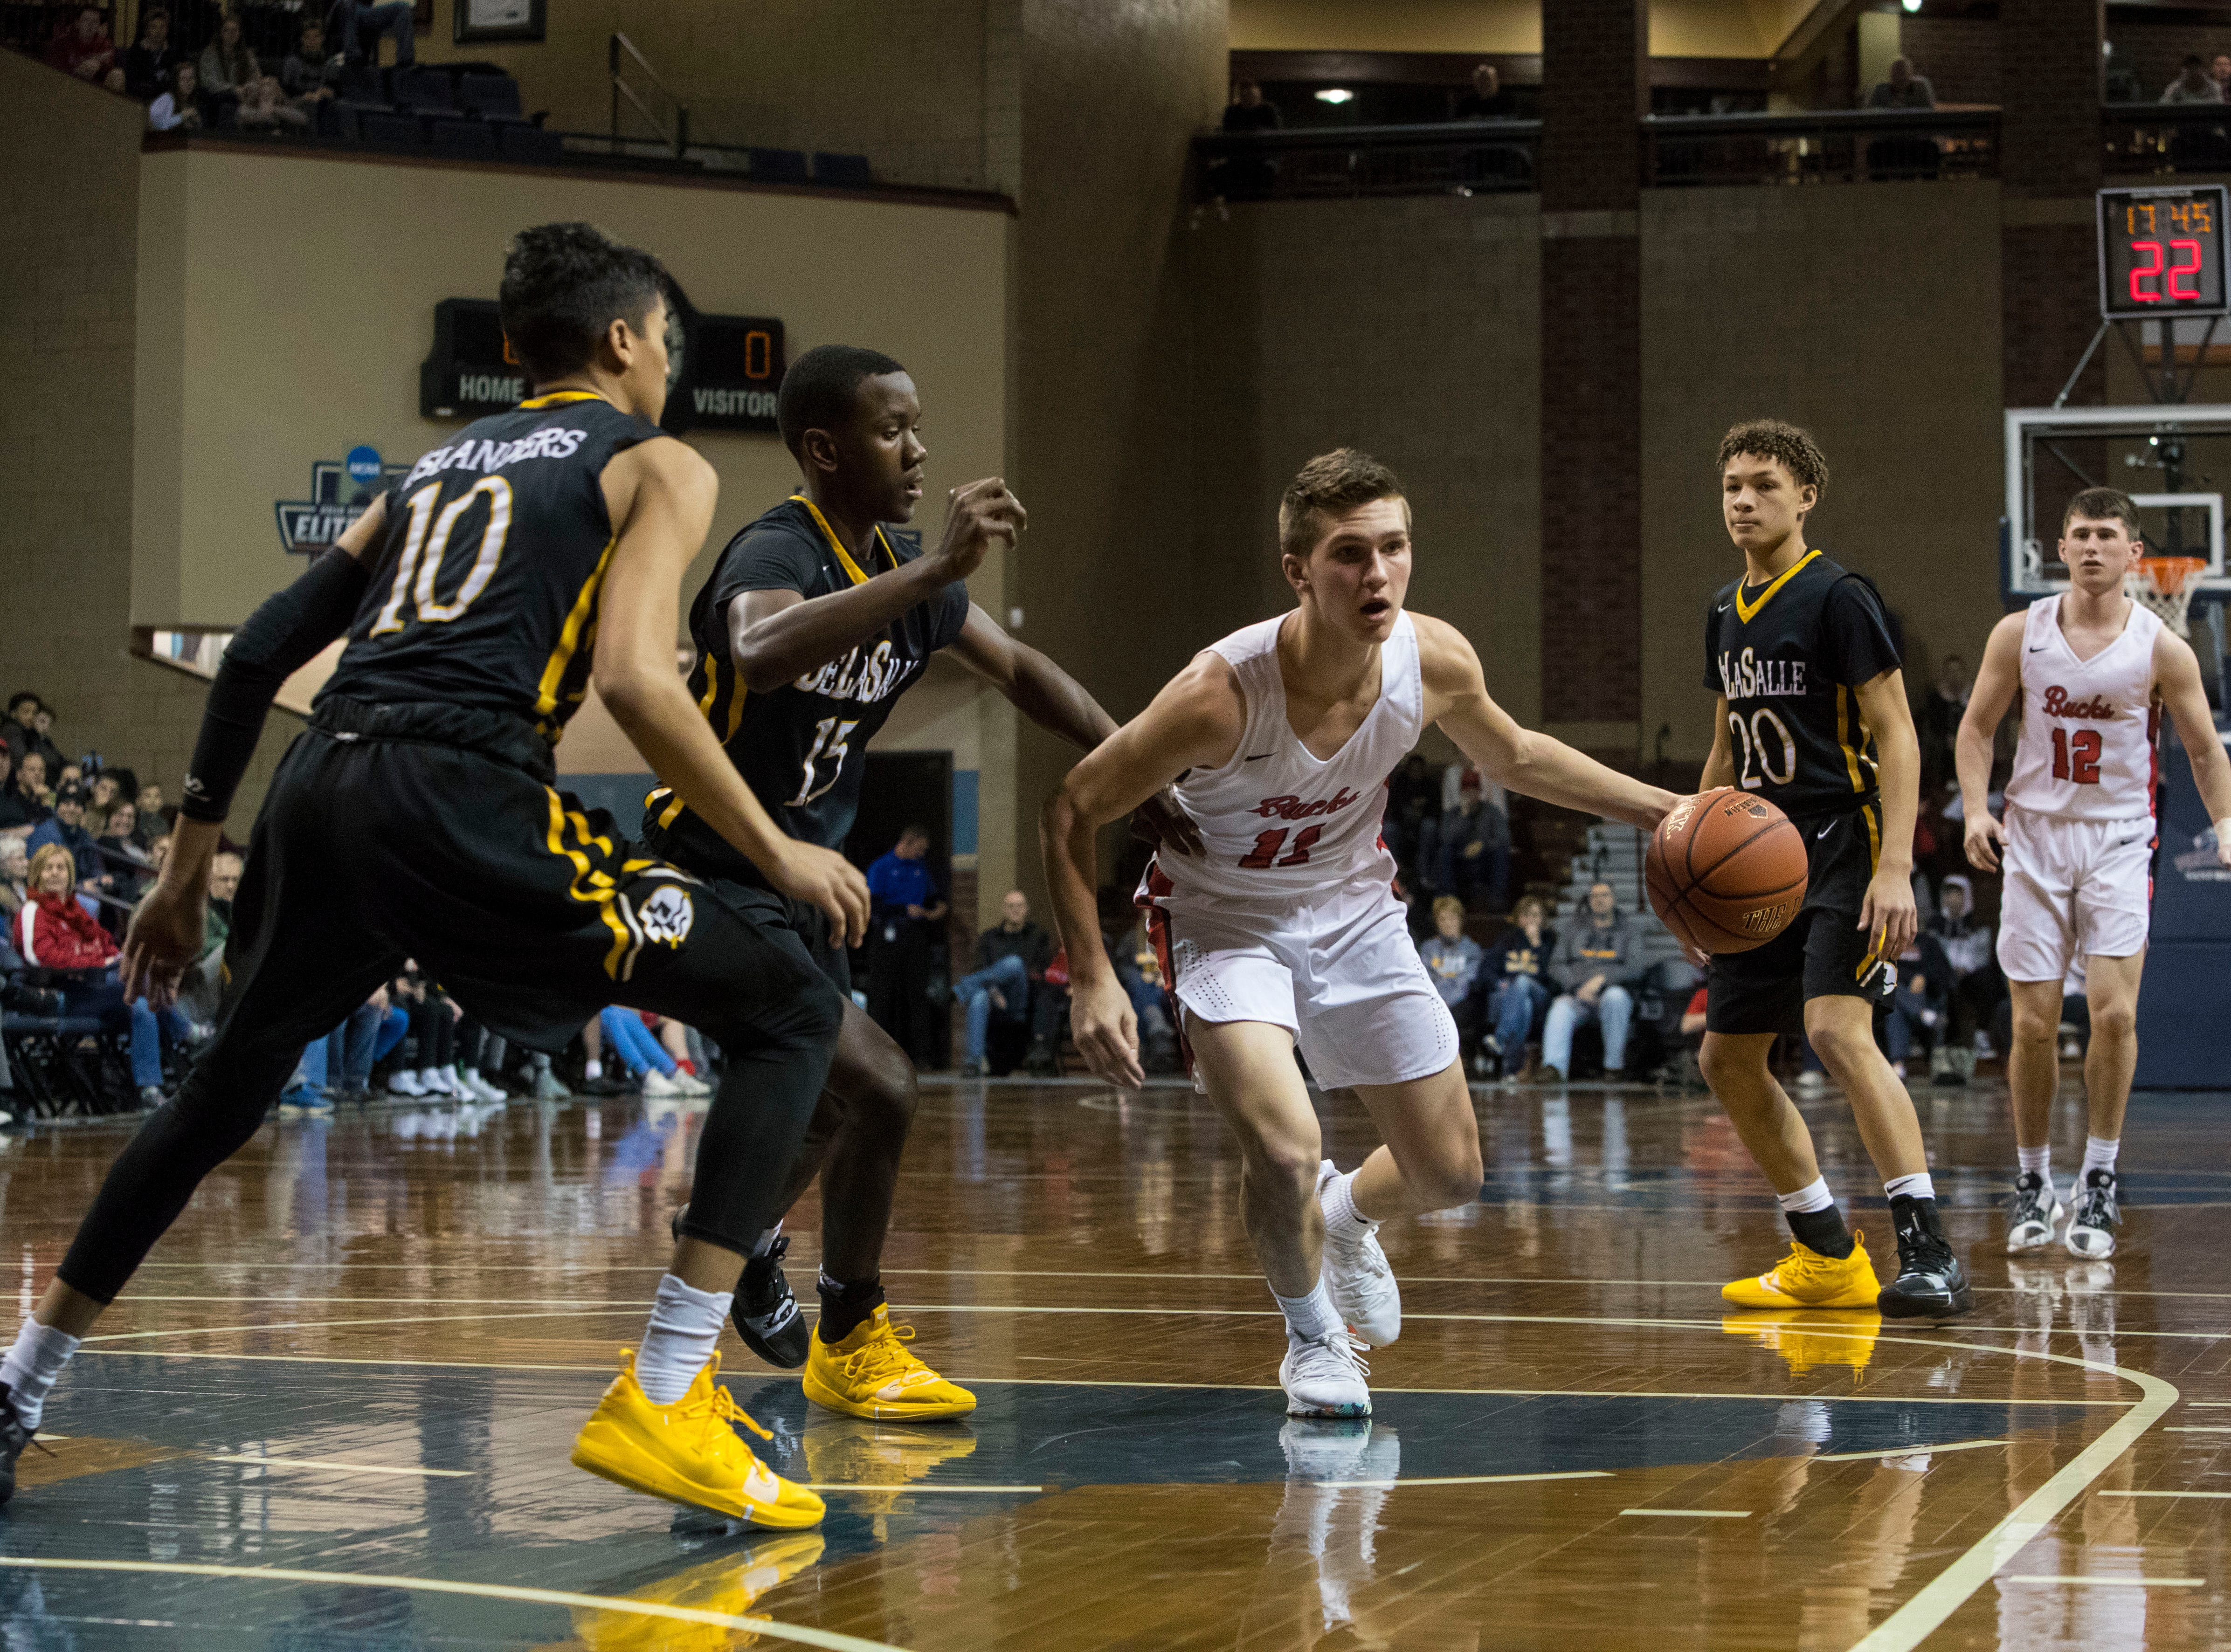 Yankton's Cooper Cornemann (11) dribbles the ball past DeLaSalle players at the Hoop City Classic at the Sanford Pentagon in Sioux Falls, S.D., Saturday, Dec. 29, 2018.